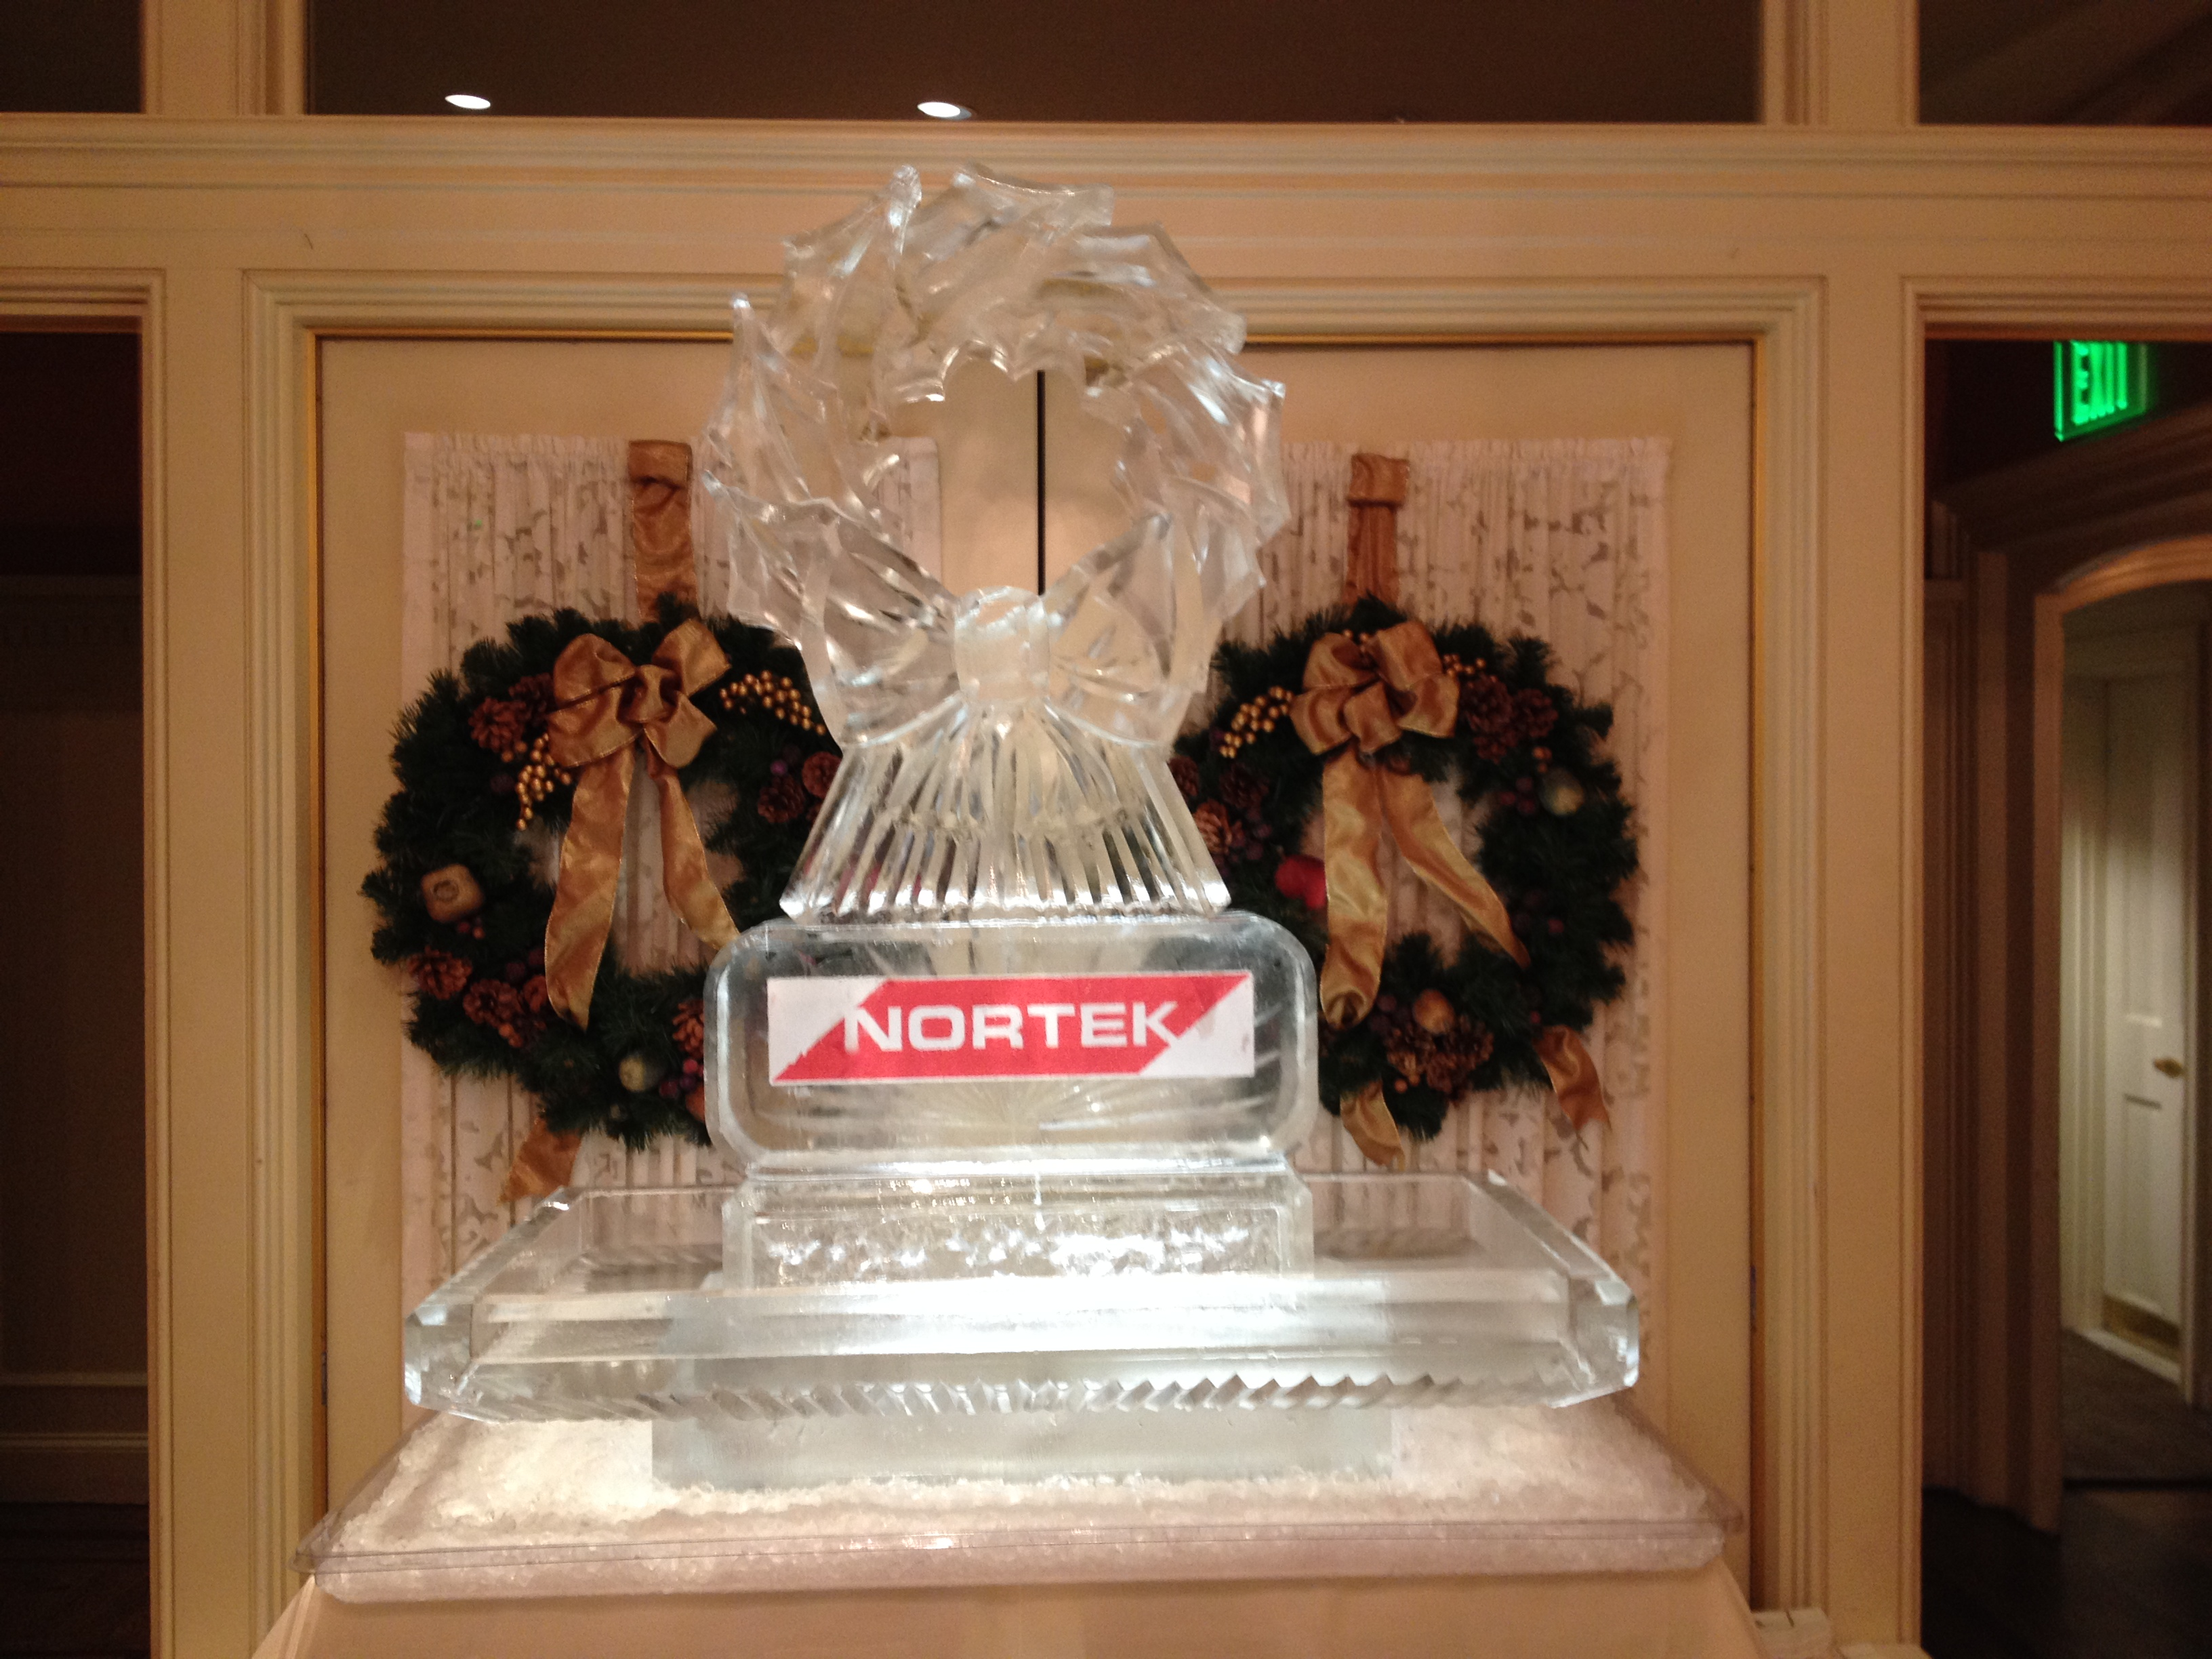 Nortek Wreath Seafood Tray